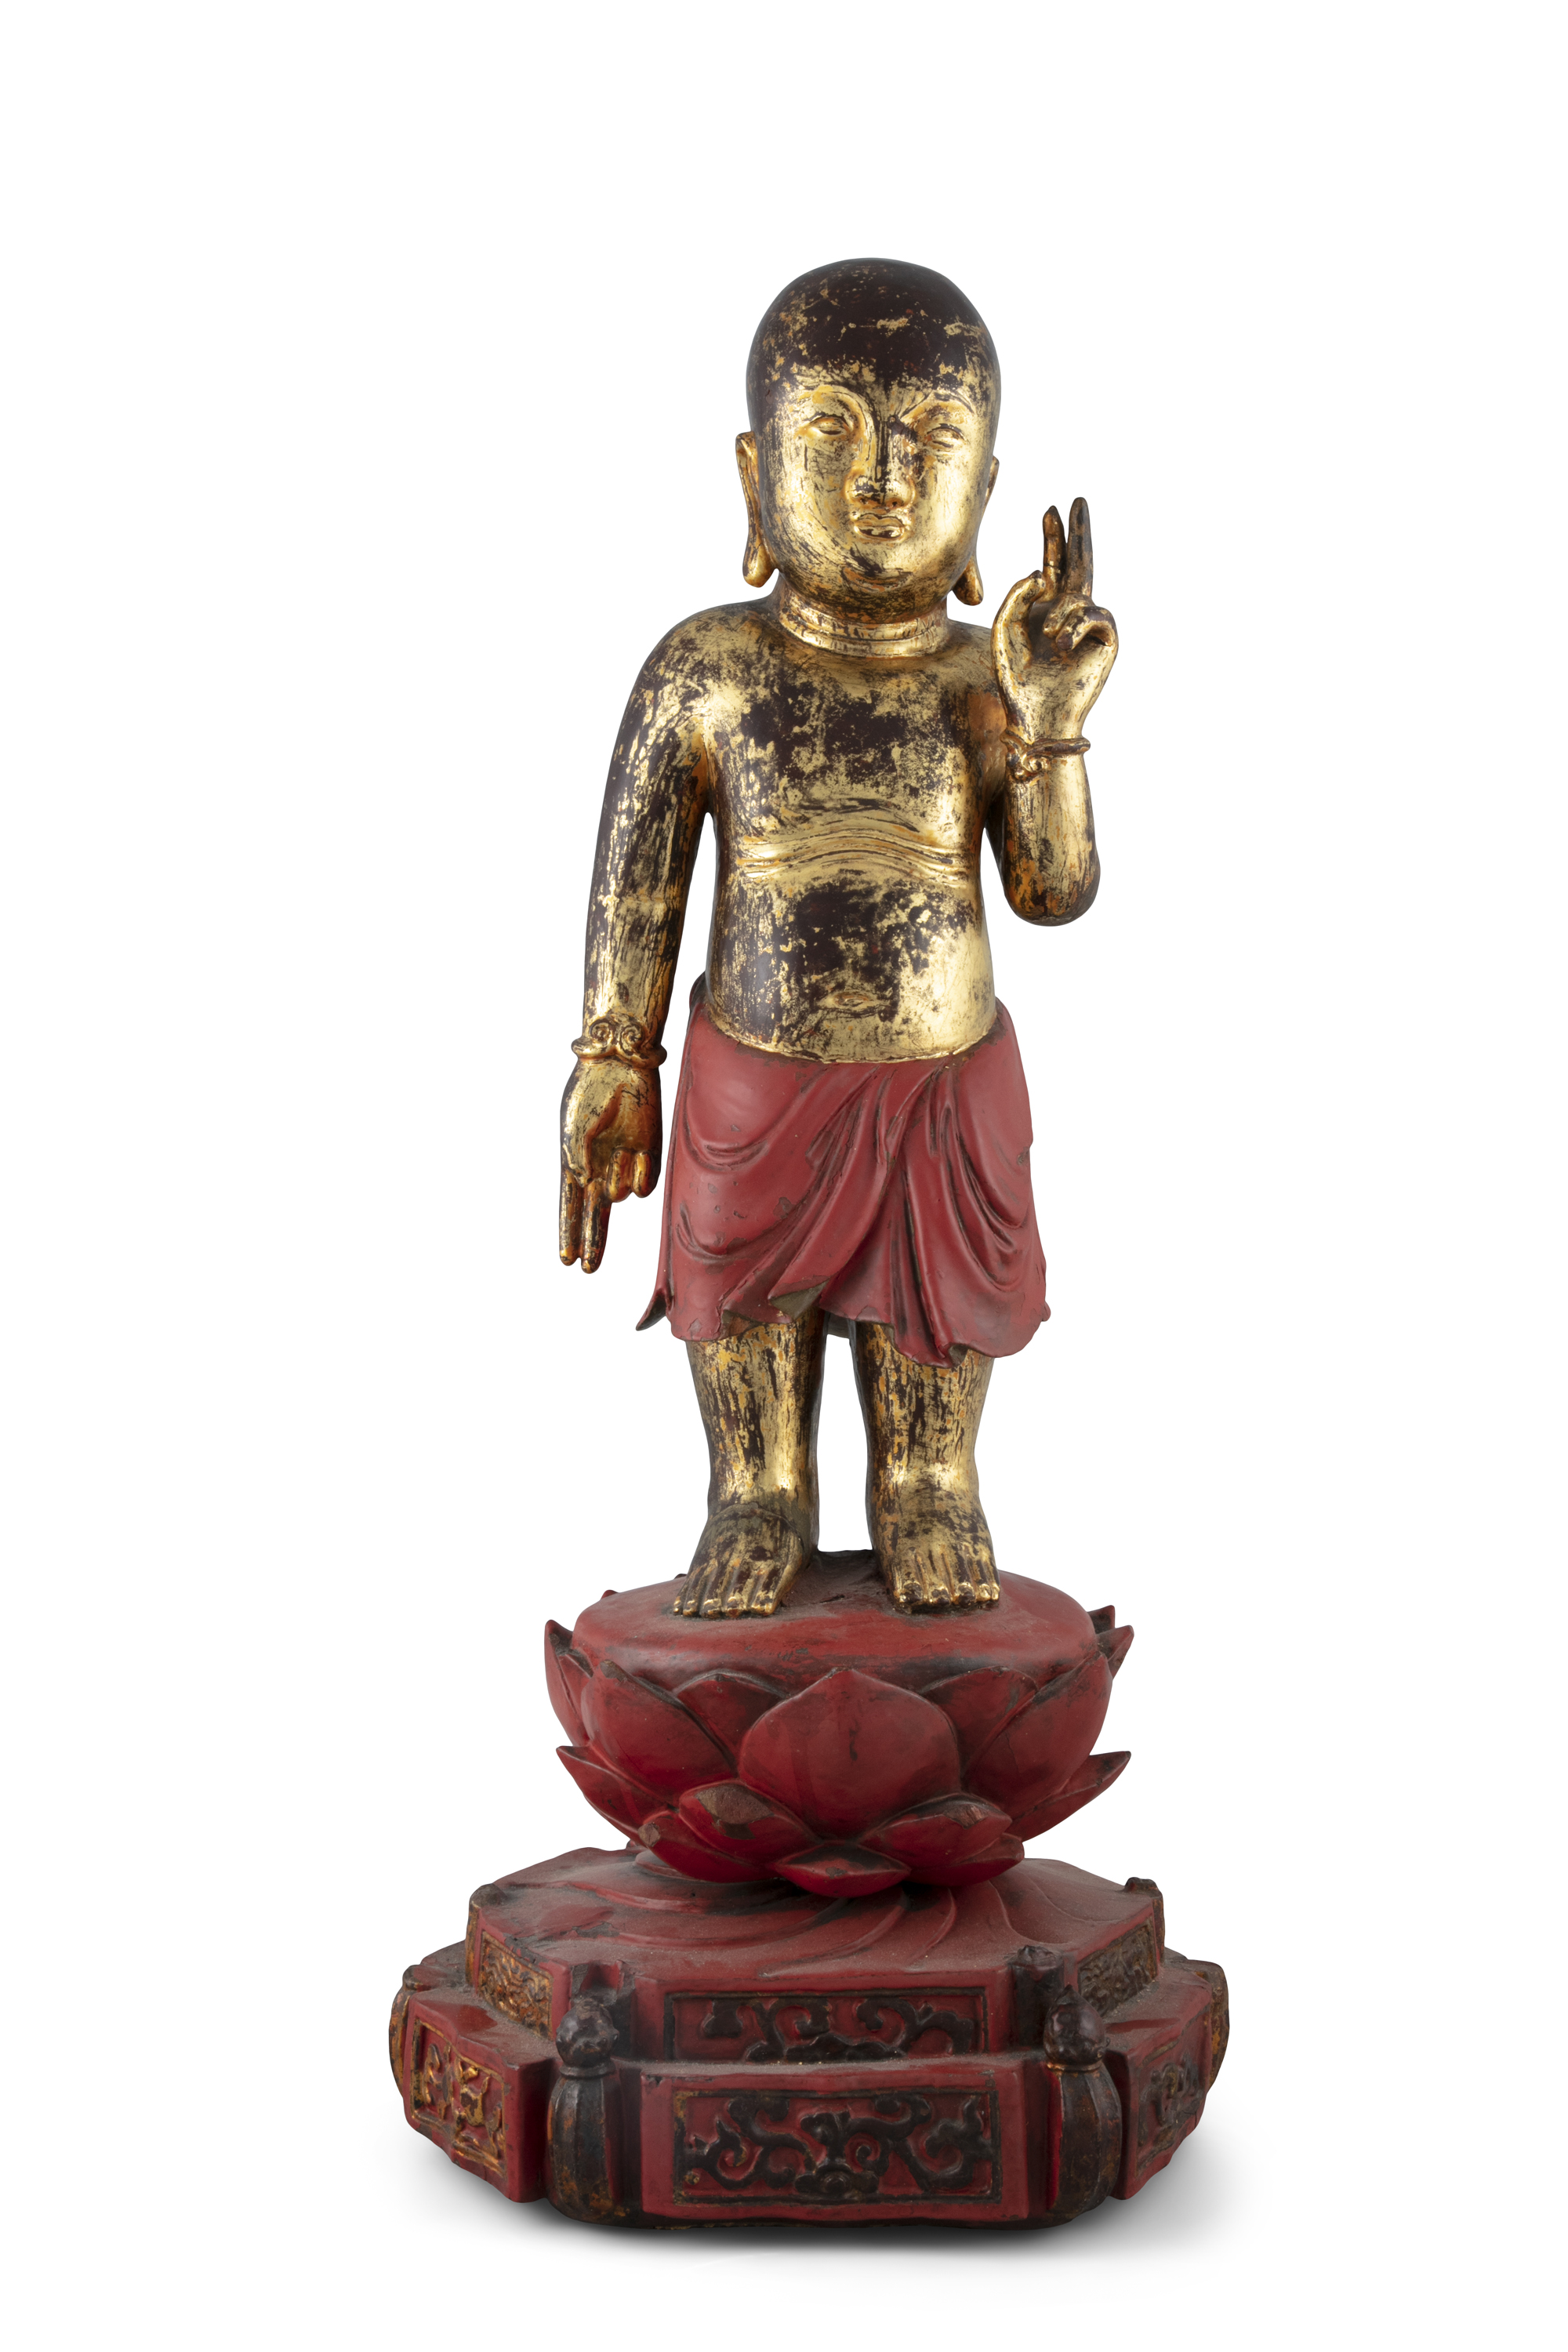 A LARGE GILT-LACQUERED WOODEN SCULPTURE OF THE STANDING INFANT BUDDHA China, Qing Dynasty (or - Image 3 of 20